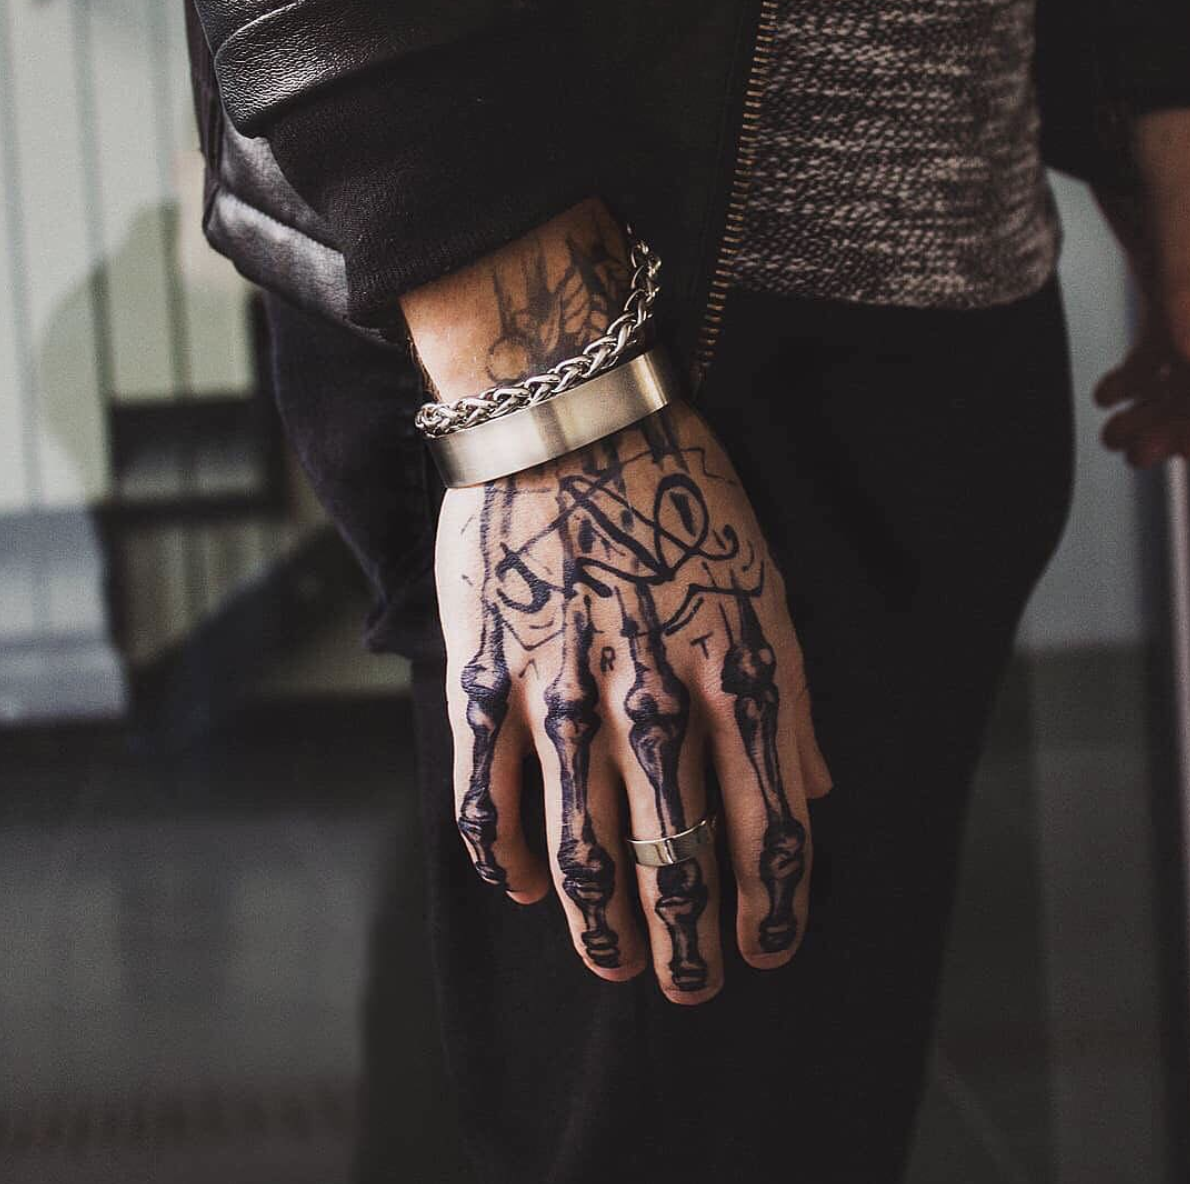 Get Your Hands On It Then Get It On Your Hands Inkbox Freehand By Dimavys4 Inkboxlove Freehand Hand Tattoos For Guys Skeleton Hand Tattoo Finger Tattoos